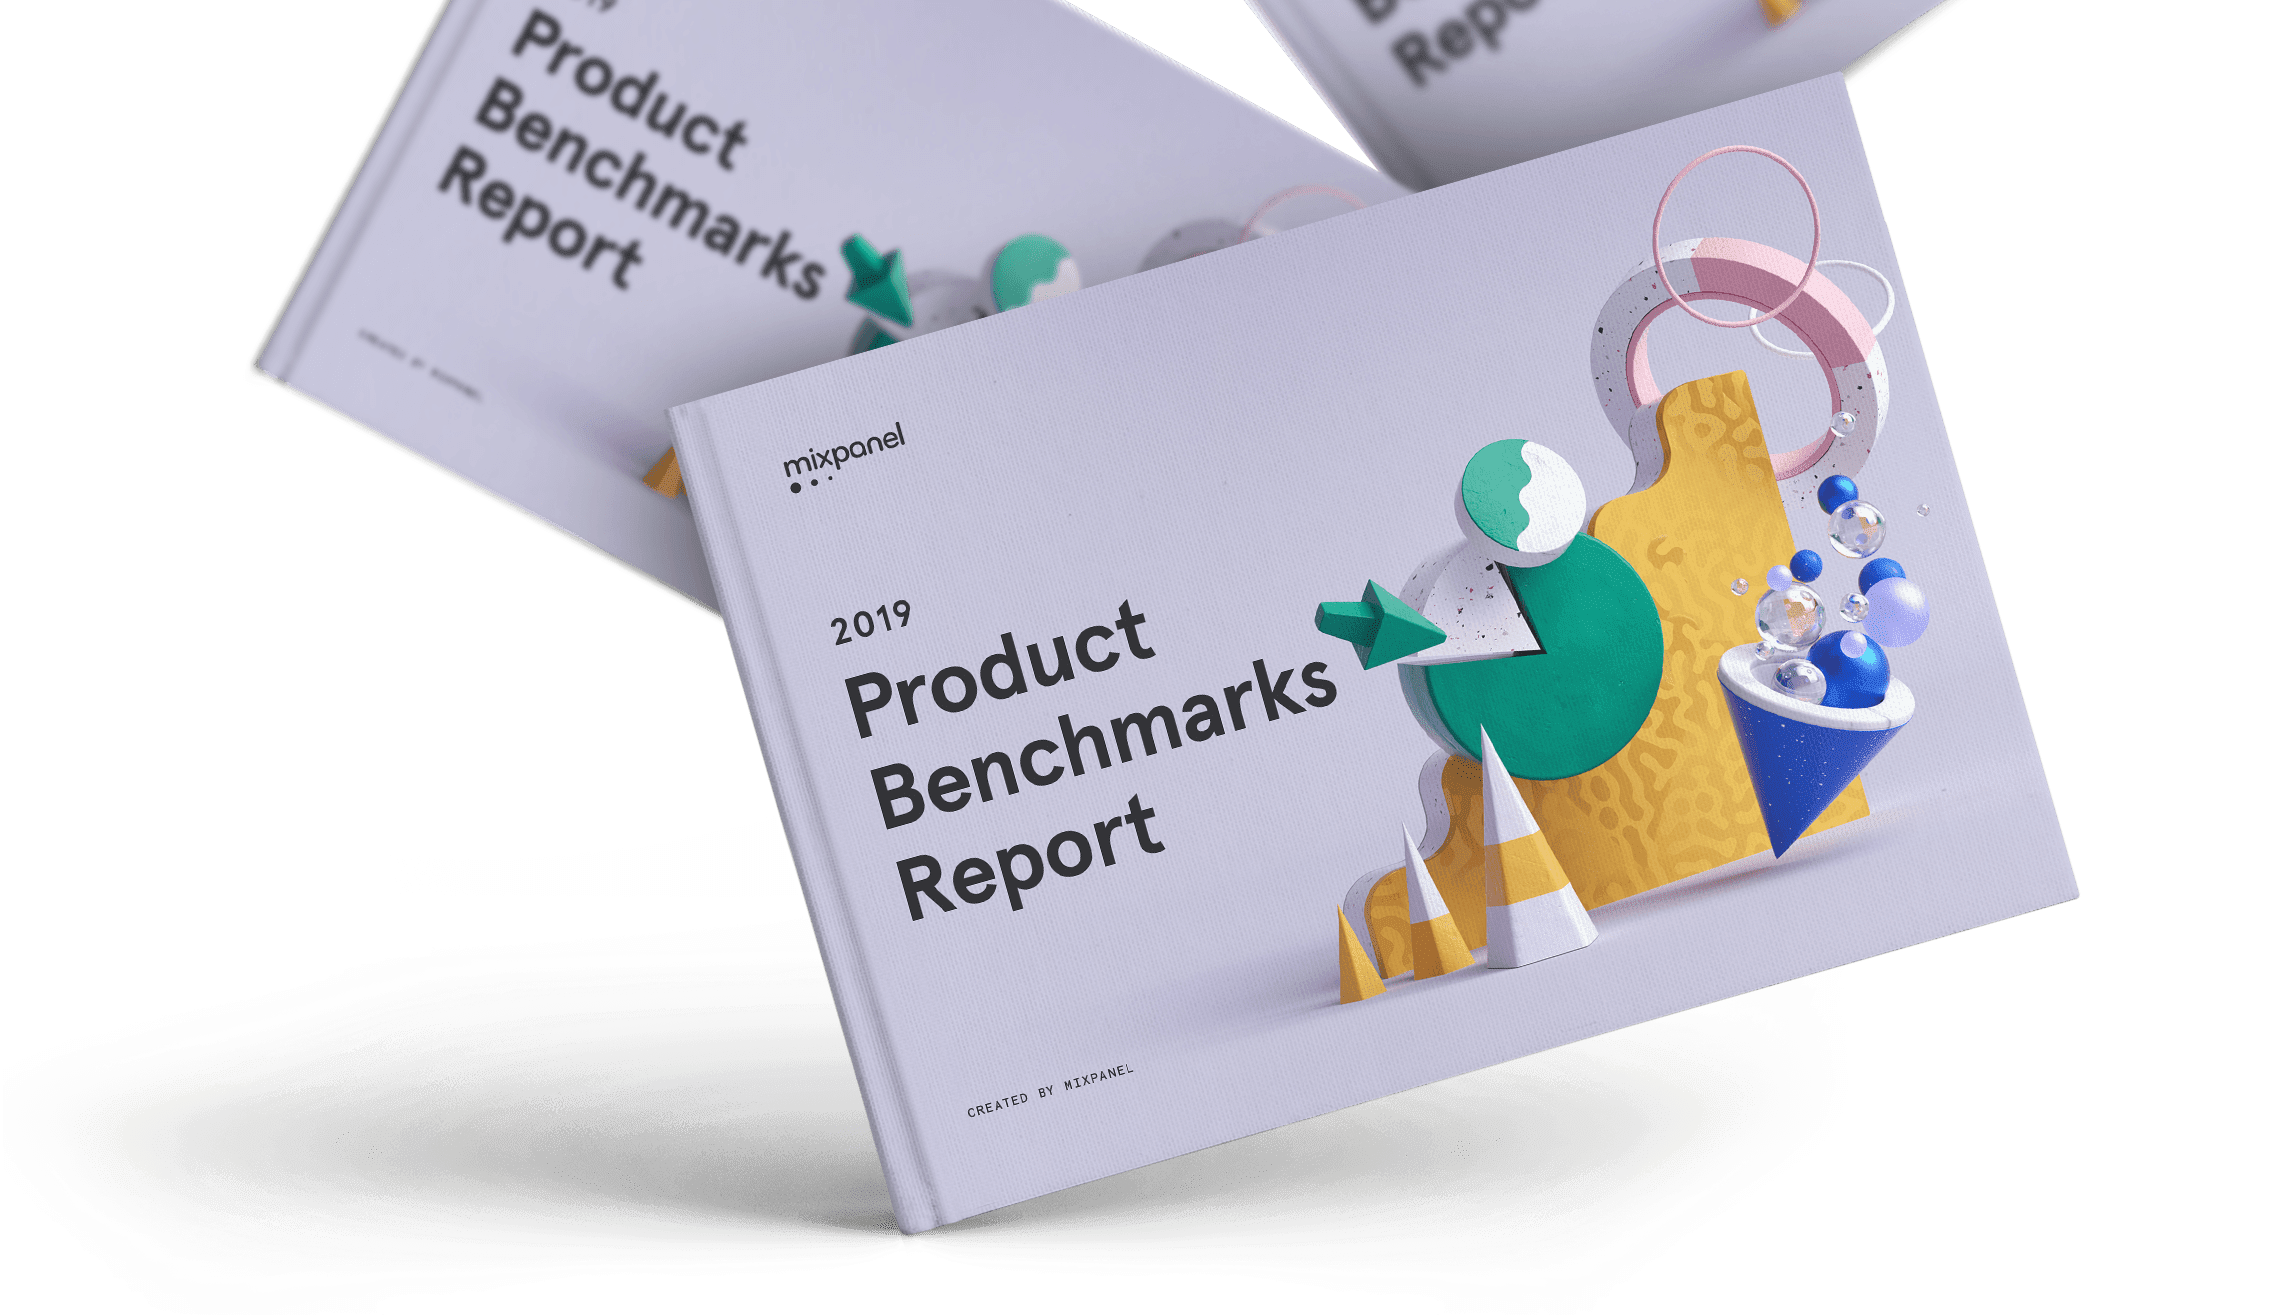 Mixpanel's 2019 Product Benchmarks Report: A Sneak Peek